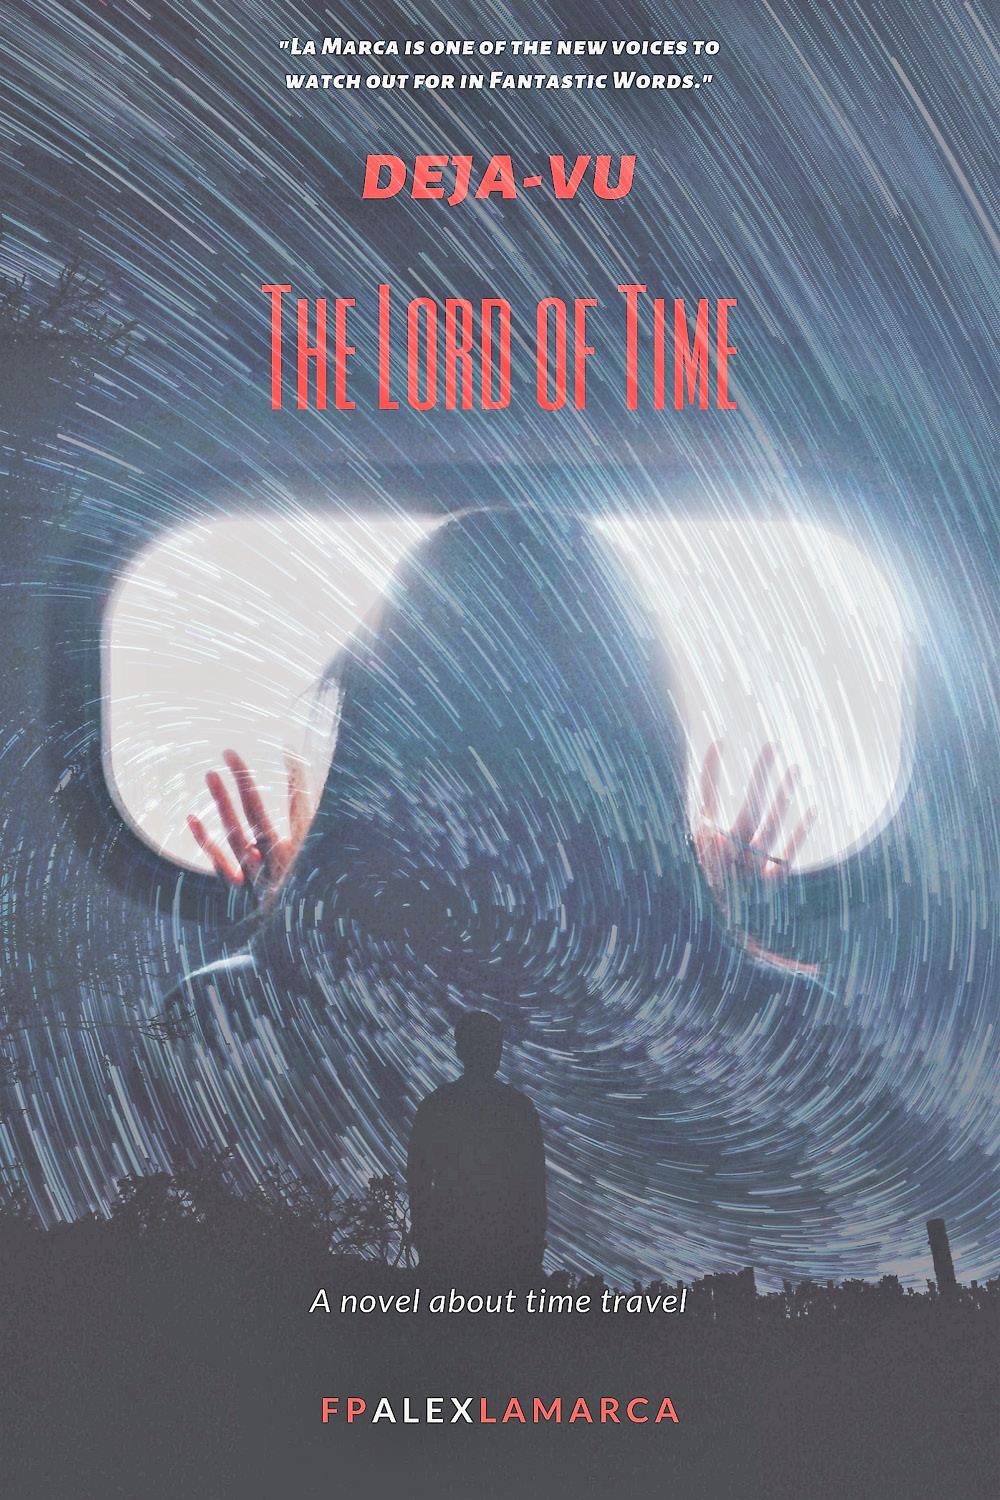 Deja-vu- The lord of time